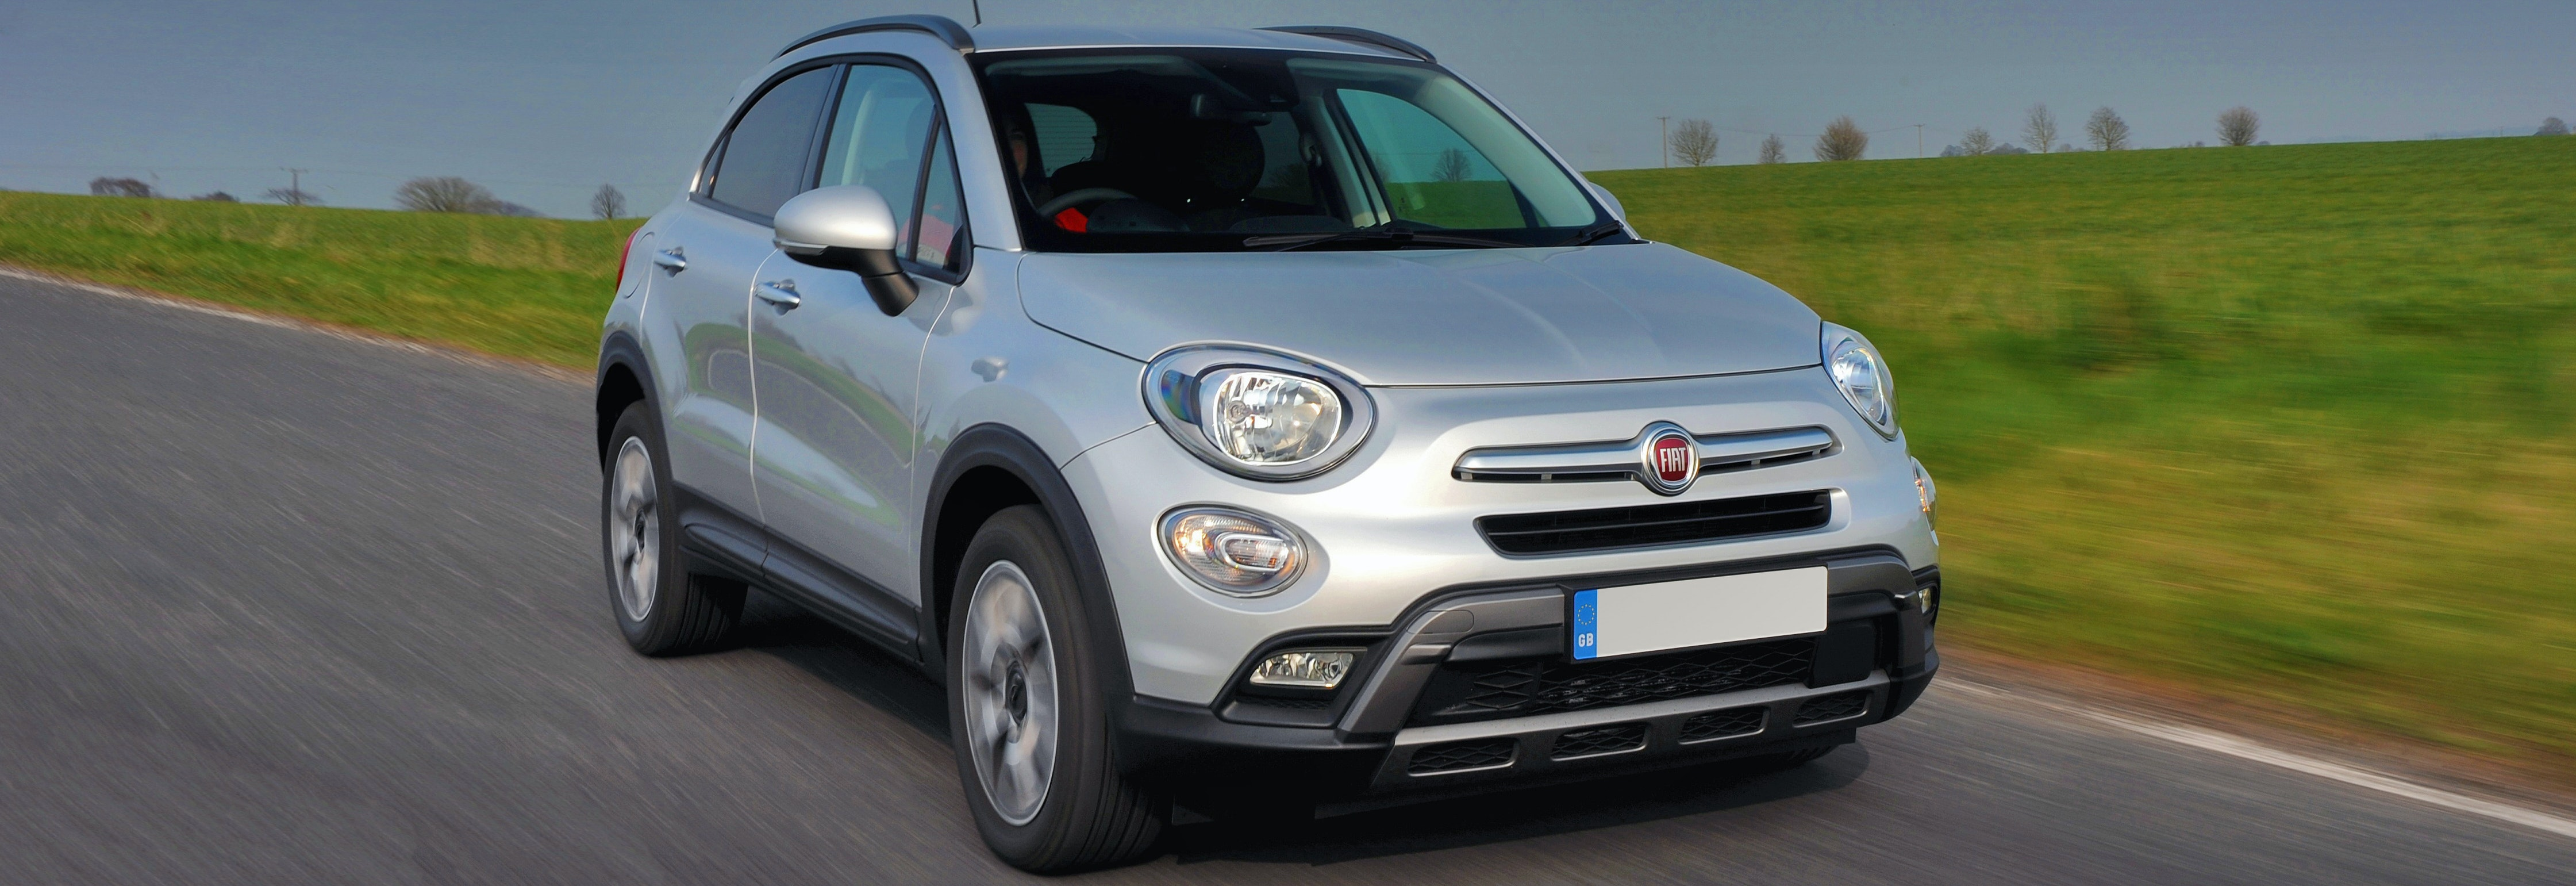 2018 fiat 500x silver driving front